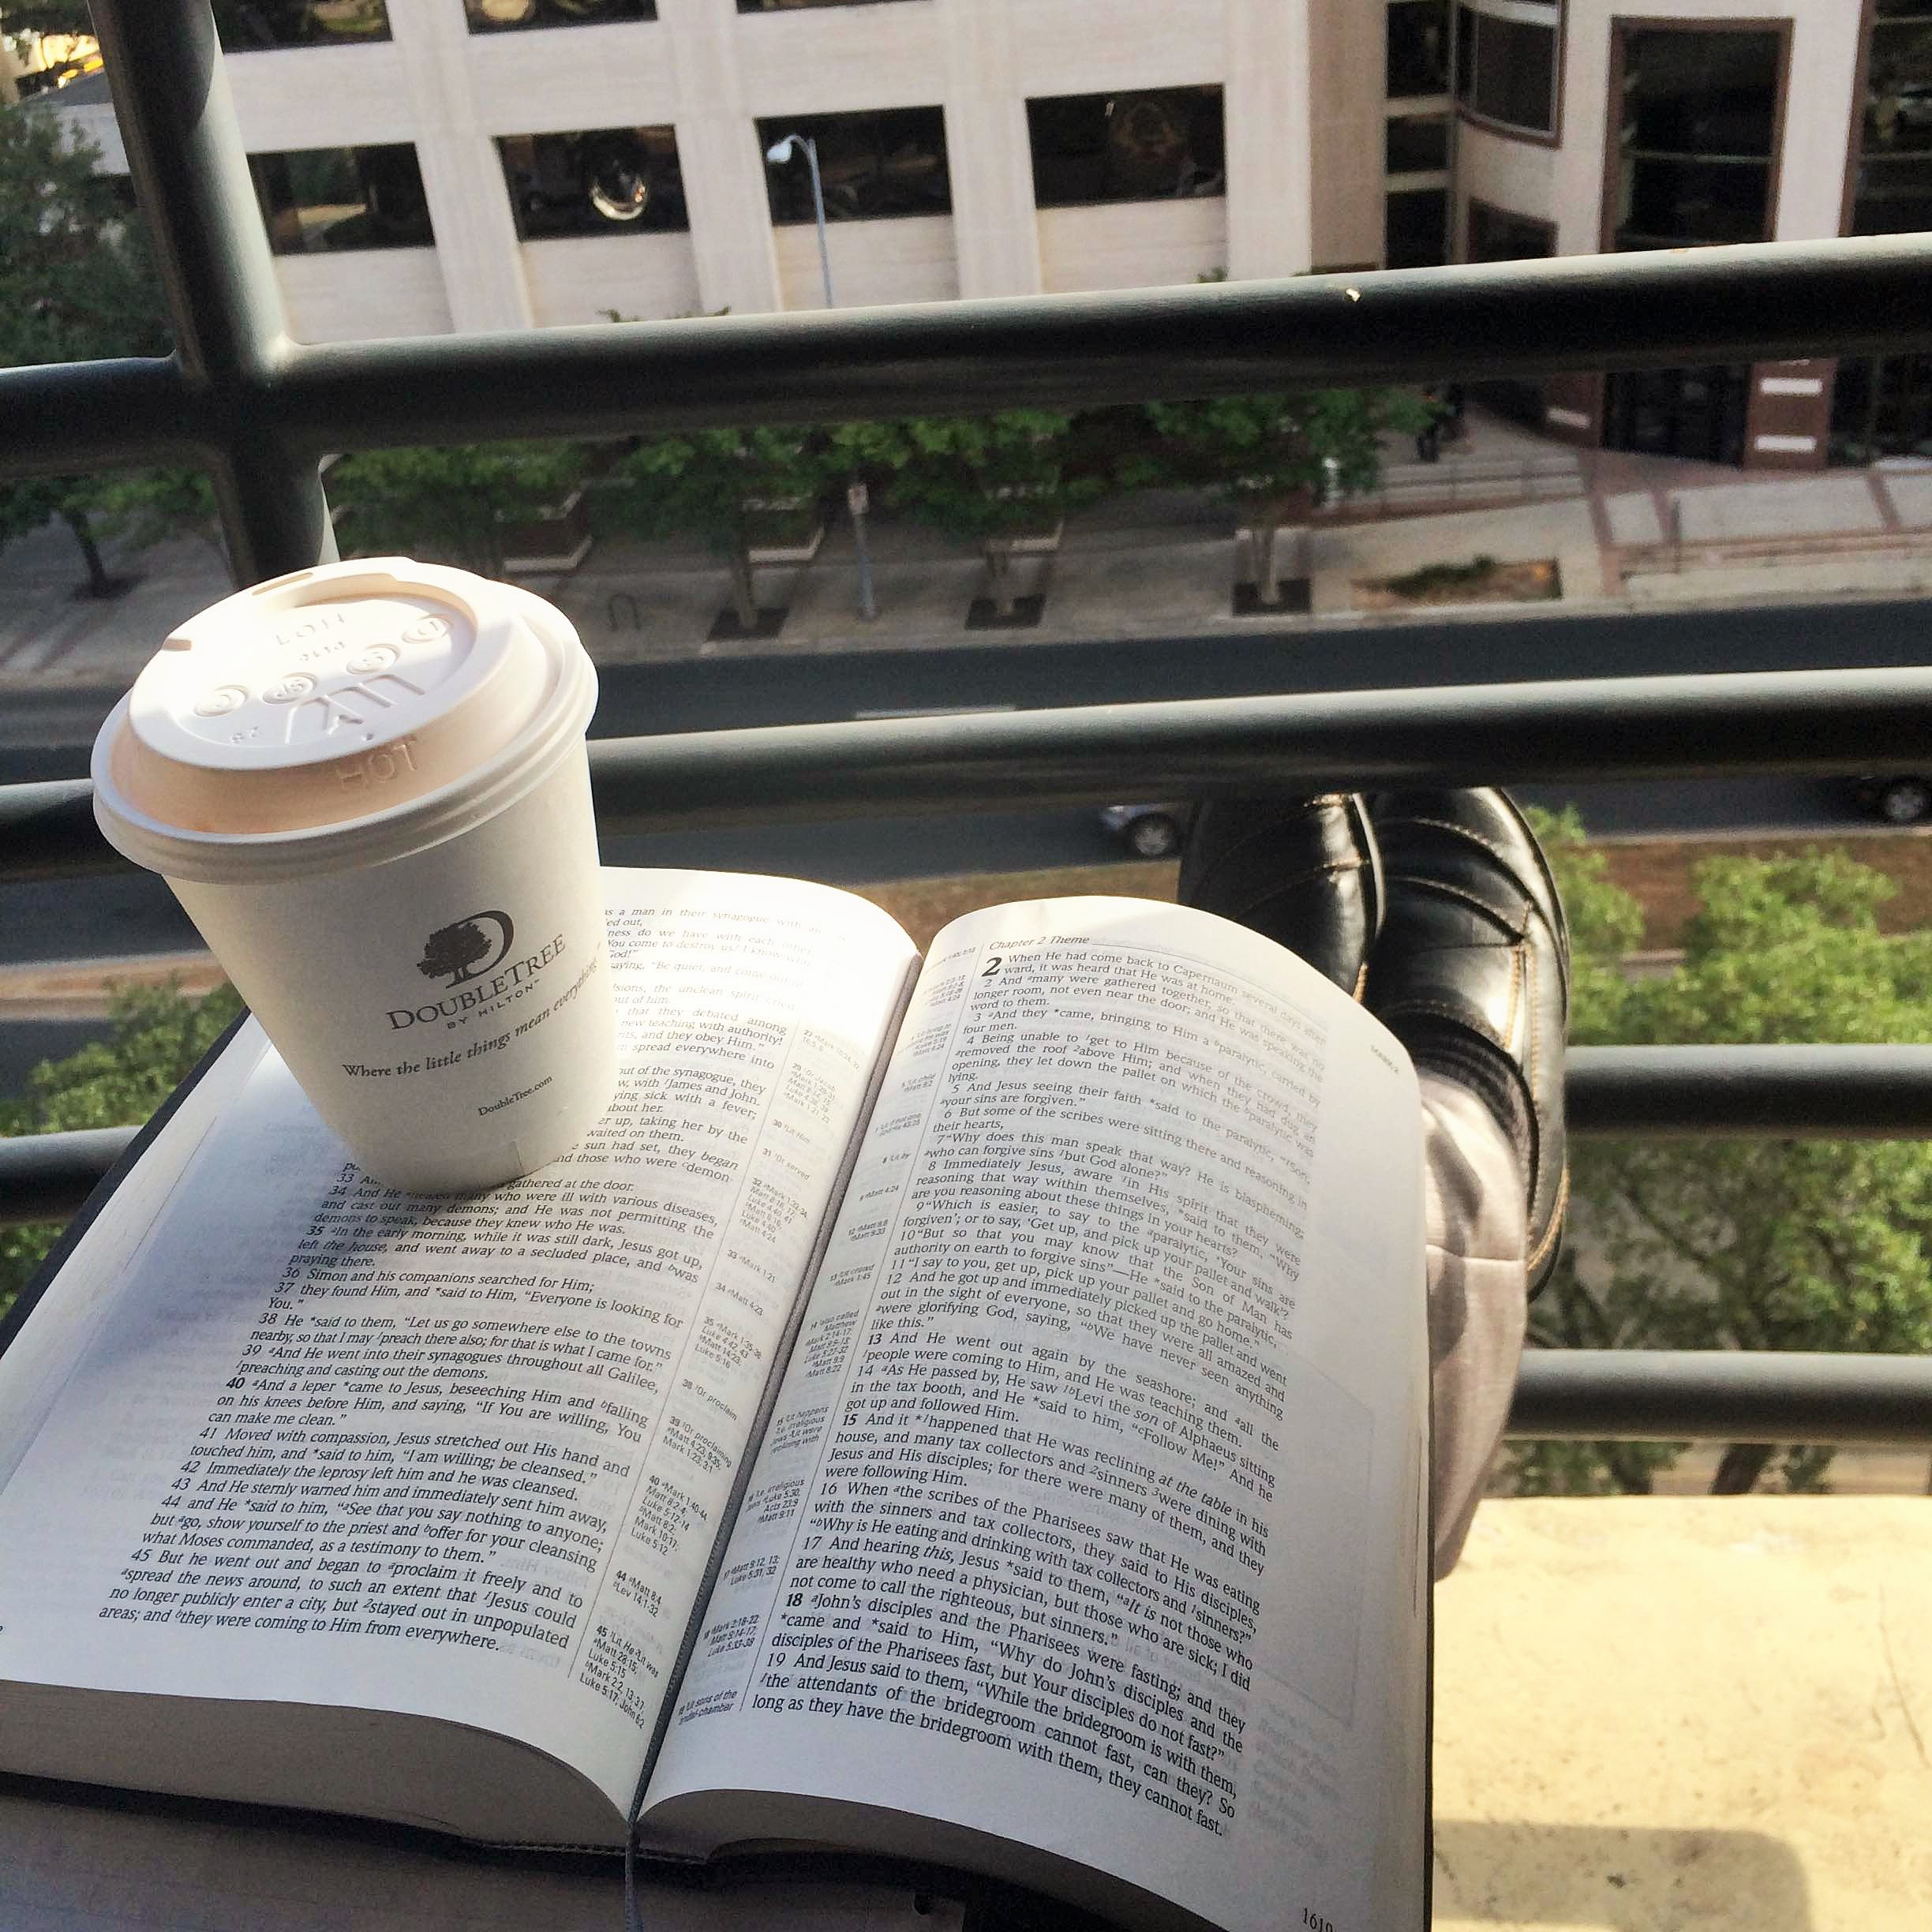 I can have my quiet time wherever I am. And I can have coffee too.